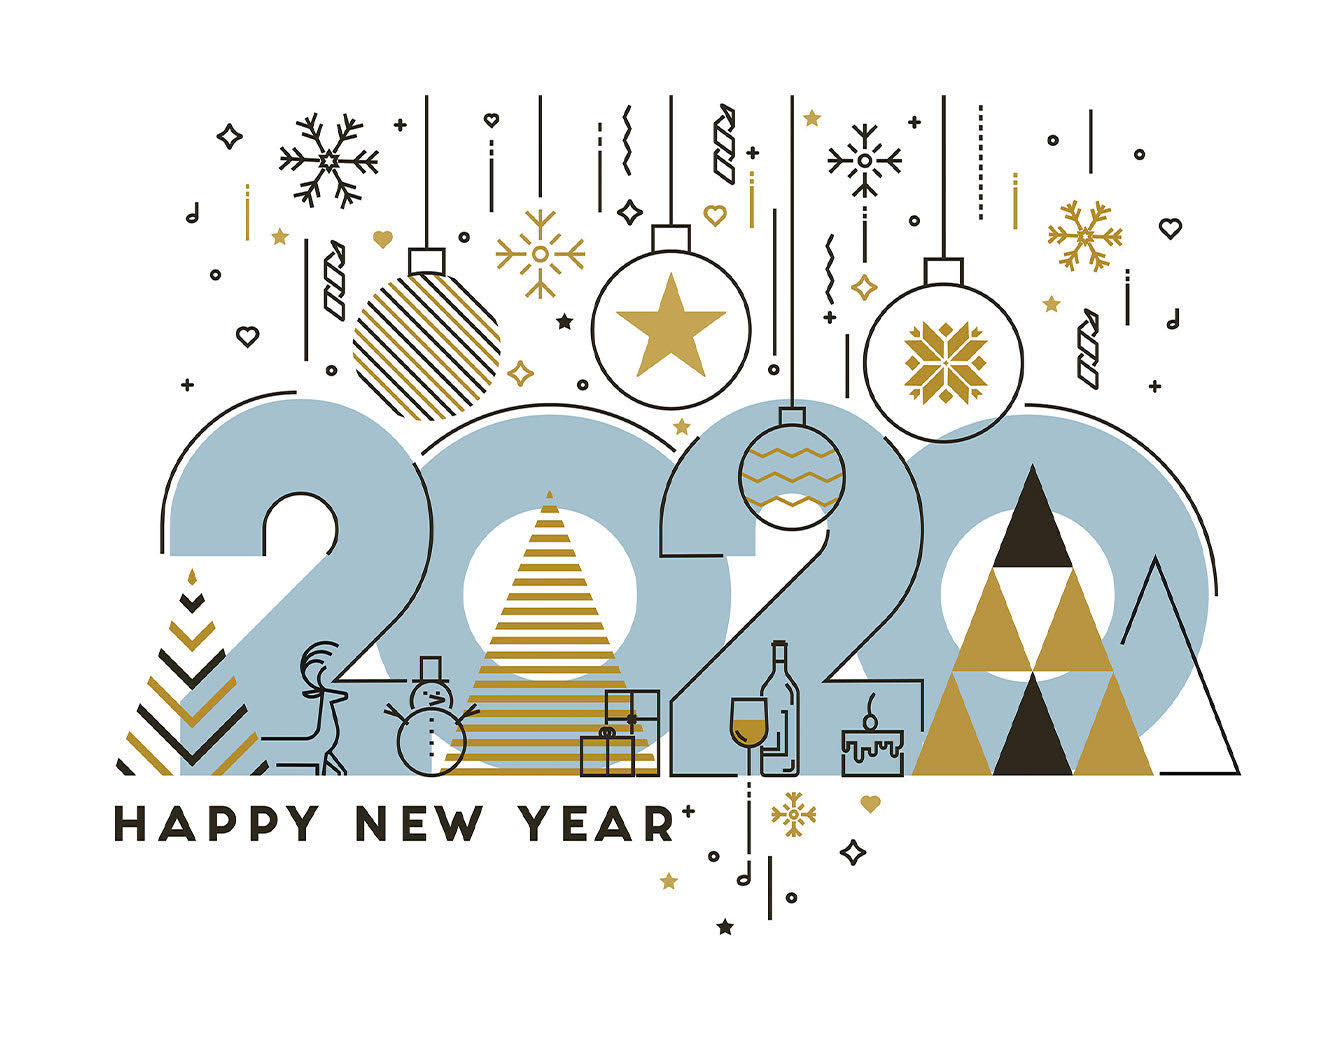 2020 new year card. Detail